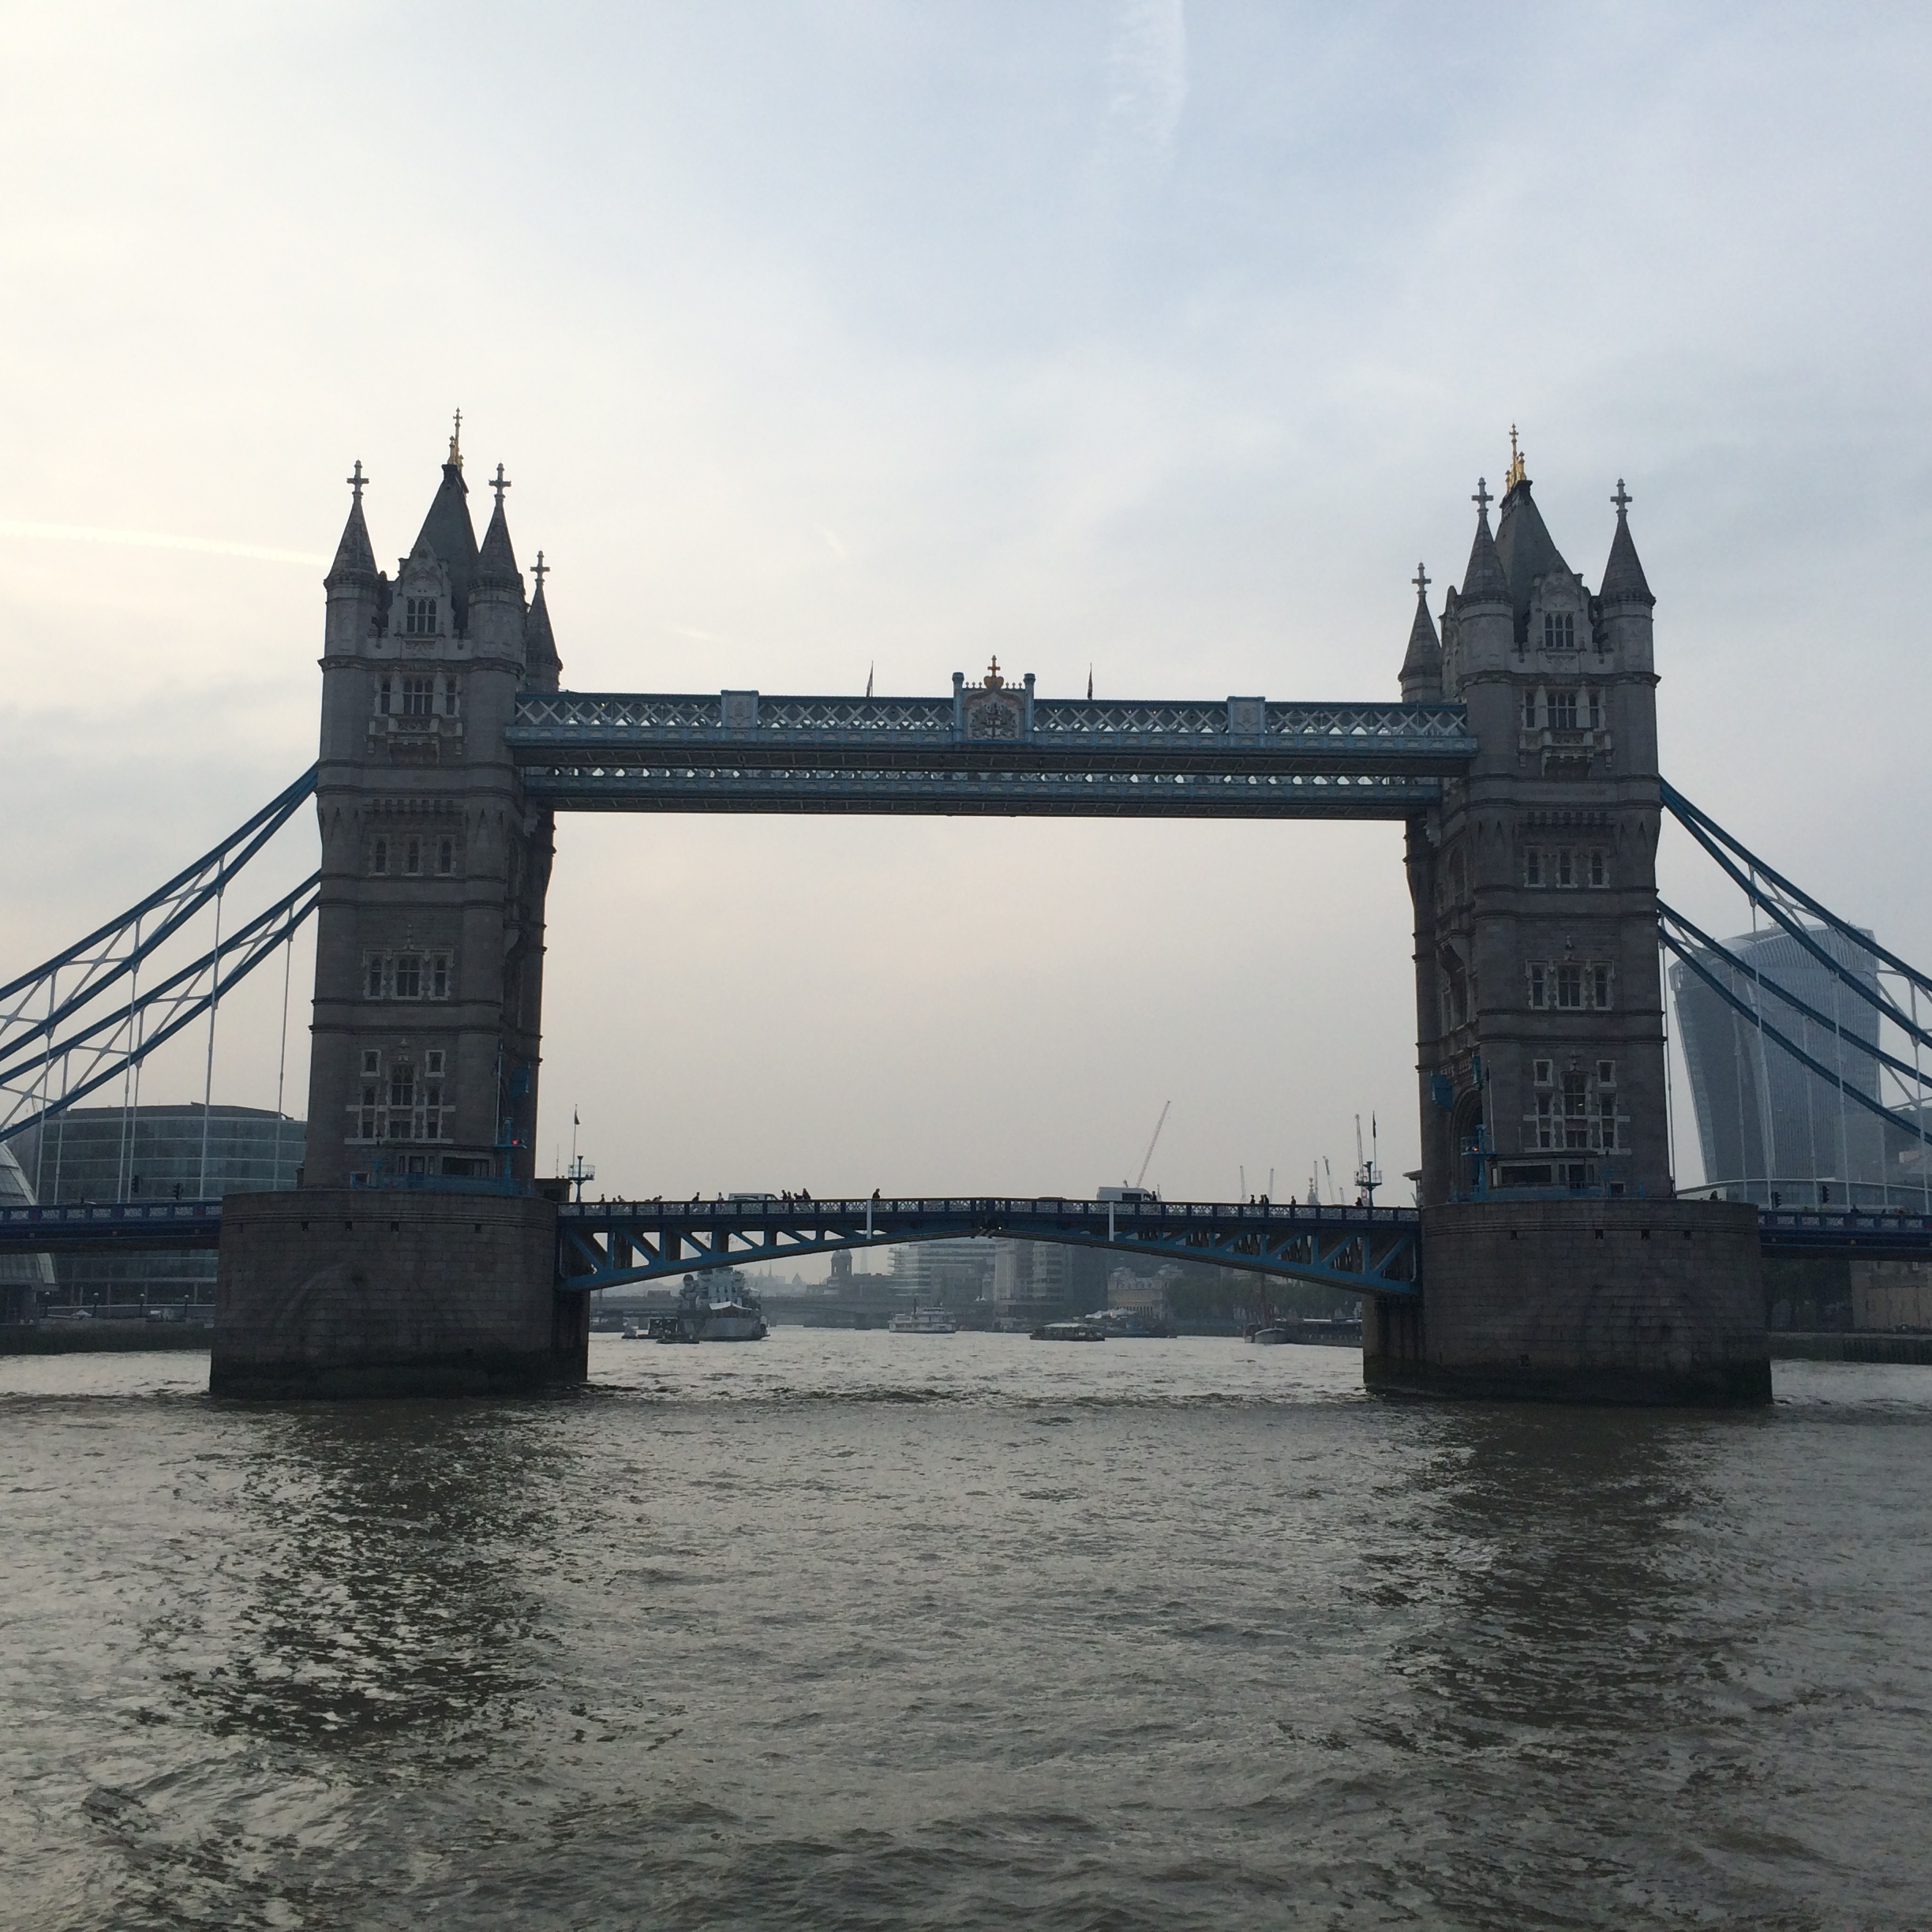 London Bridge from the river